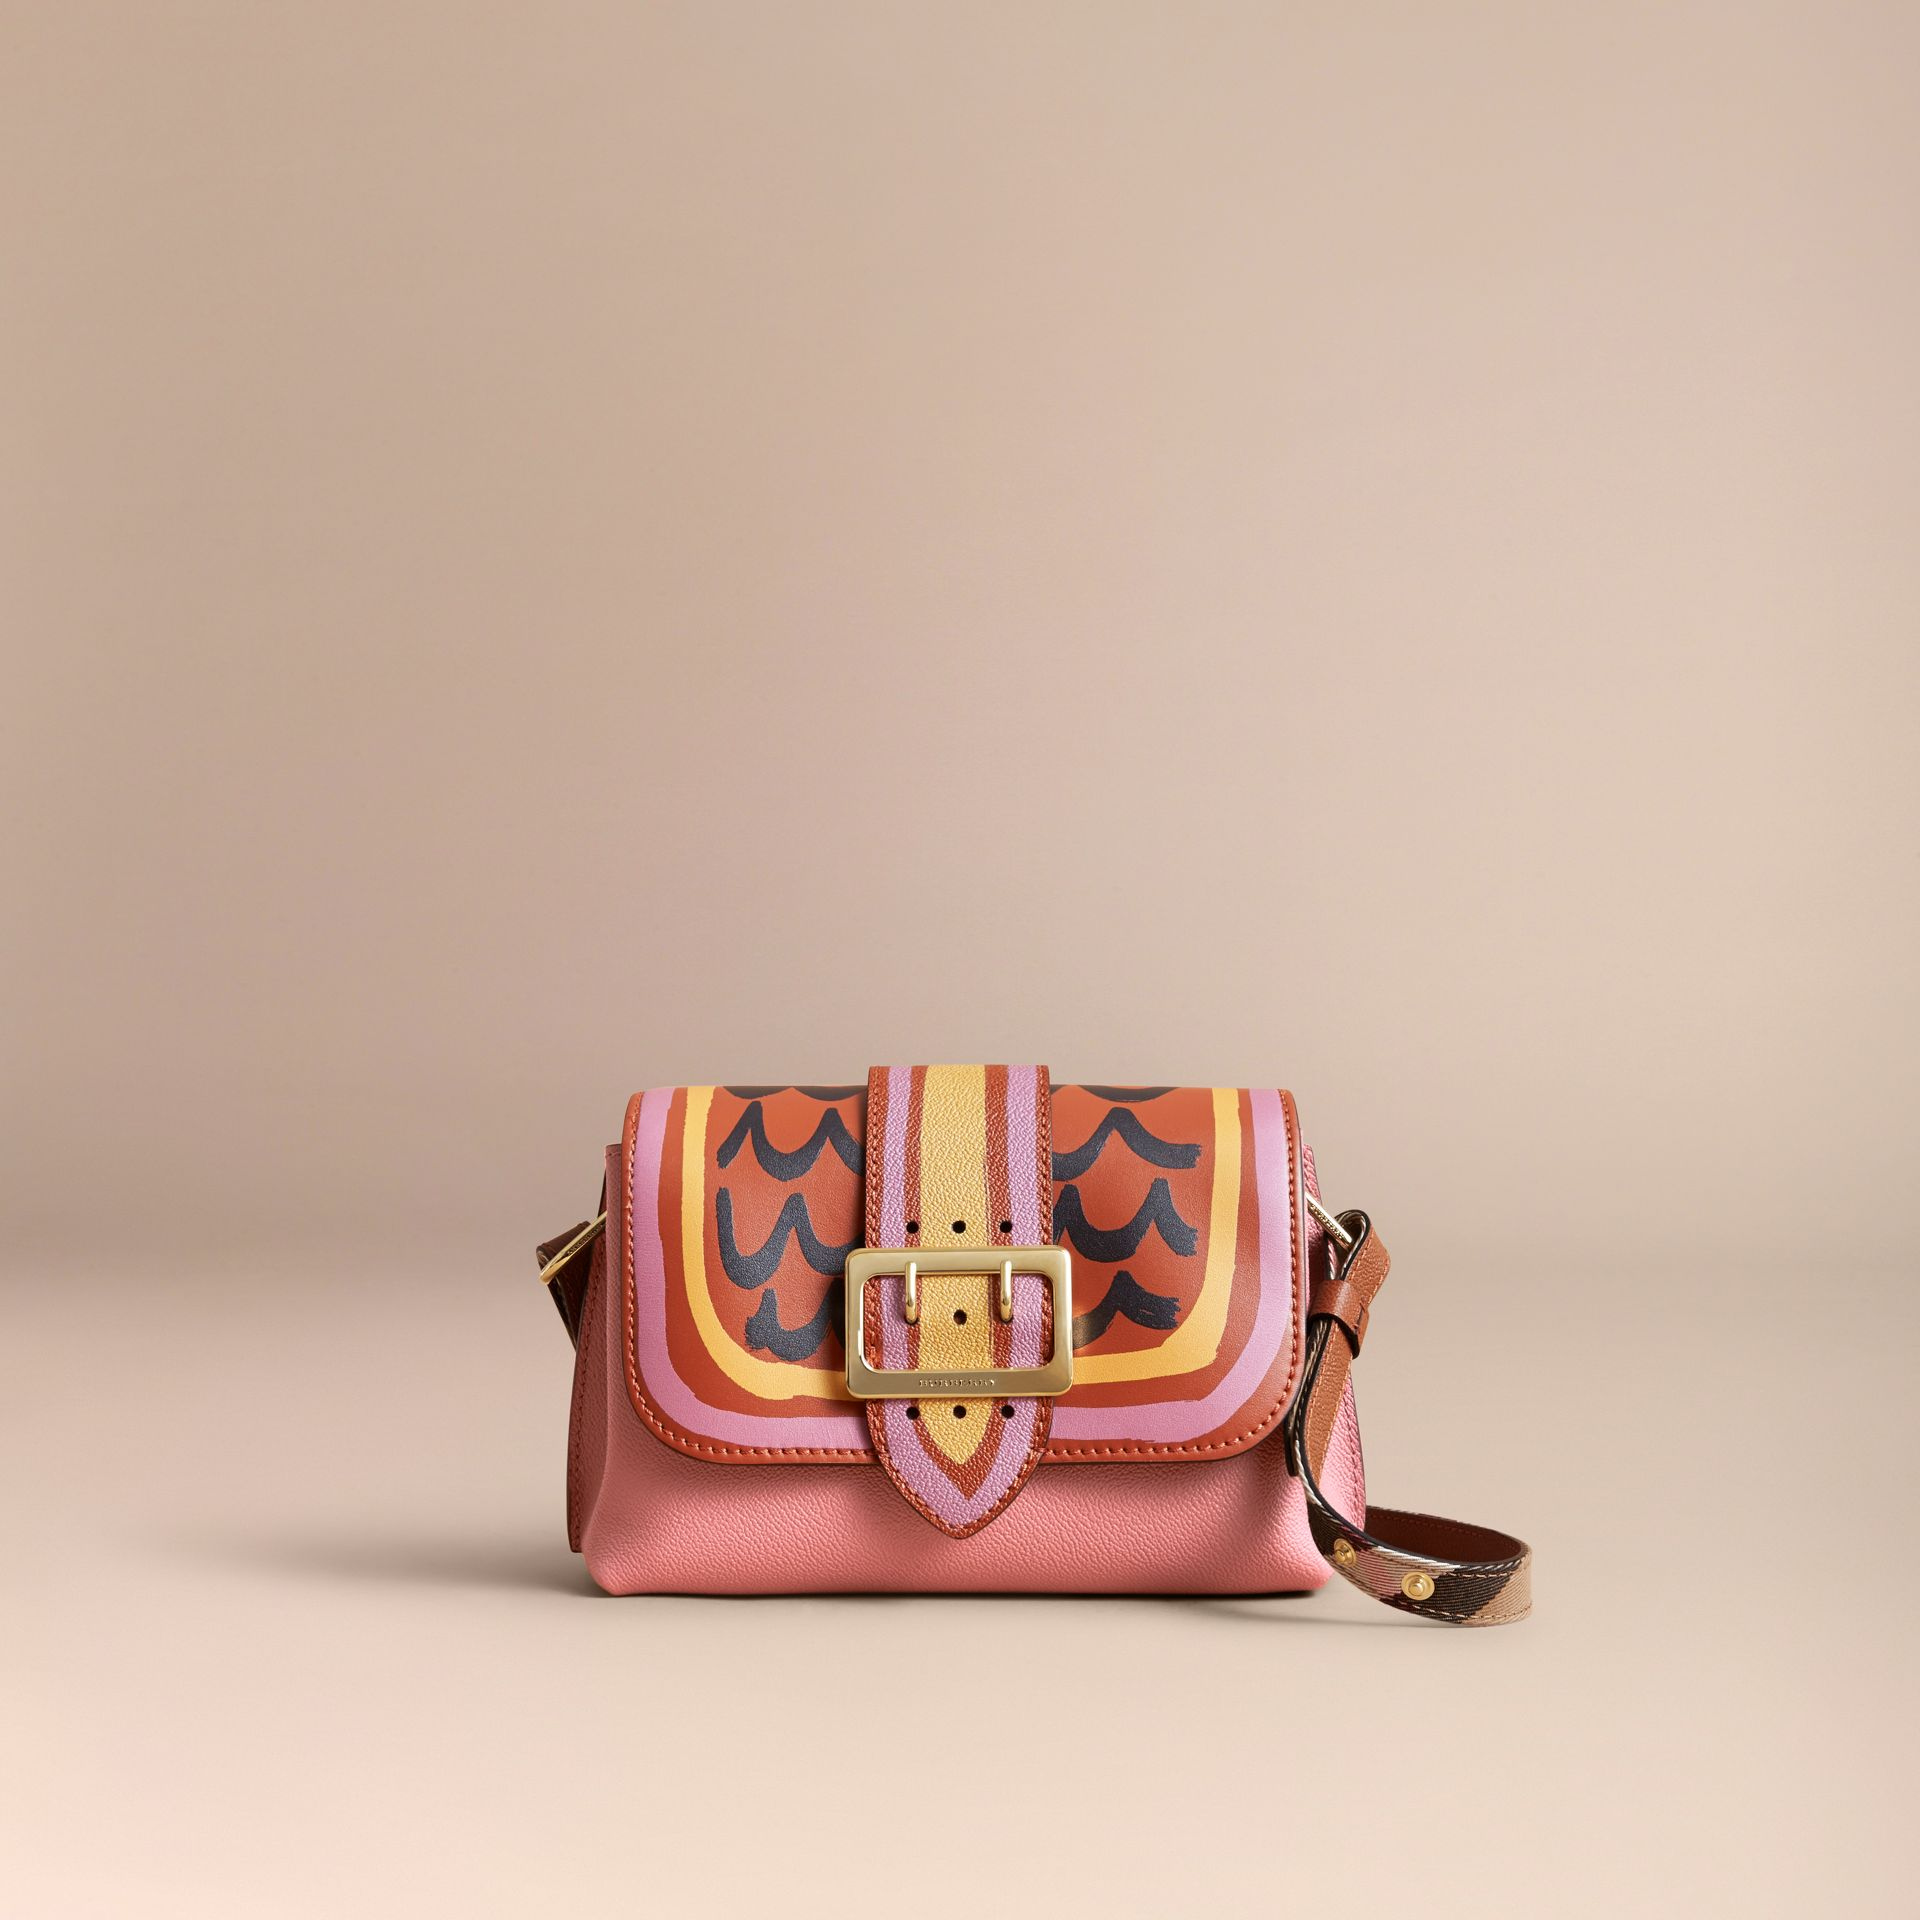 The Buckle Crossbody Bag in Trompe L'oeil Leather Dusty Pink/bright Toffee - gallery image 7